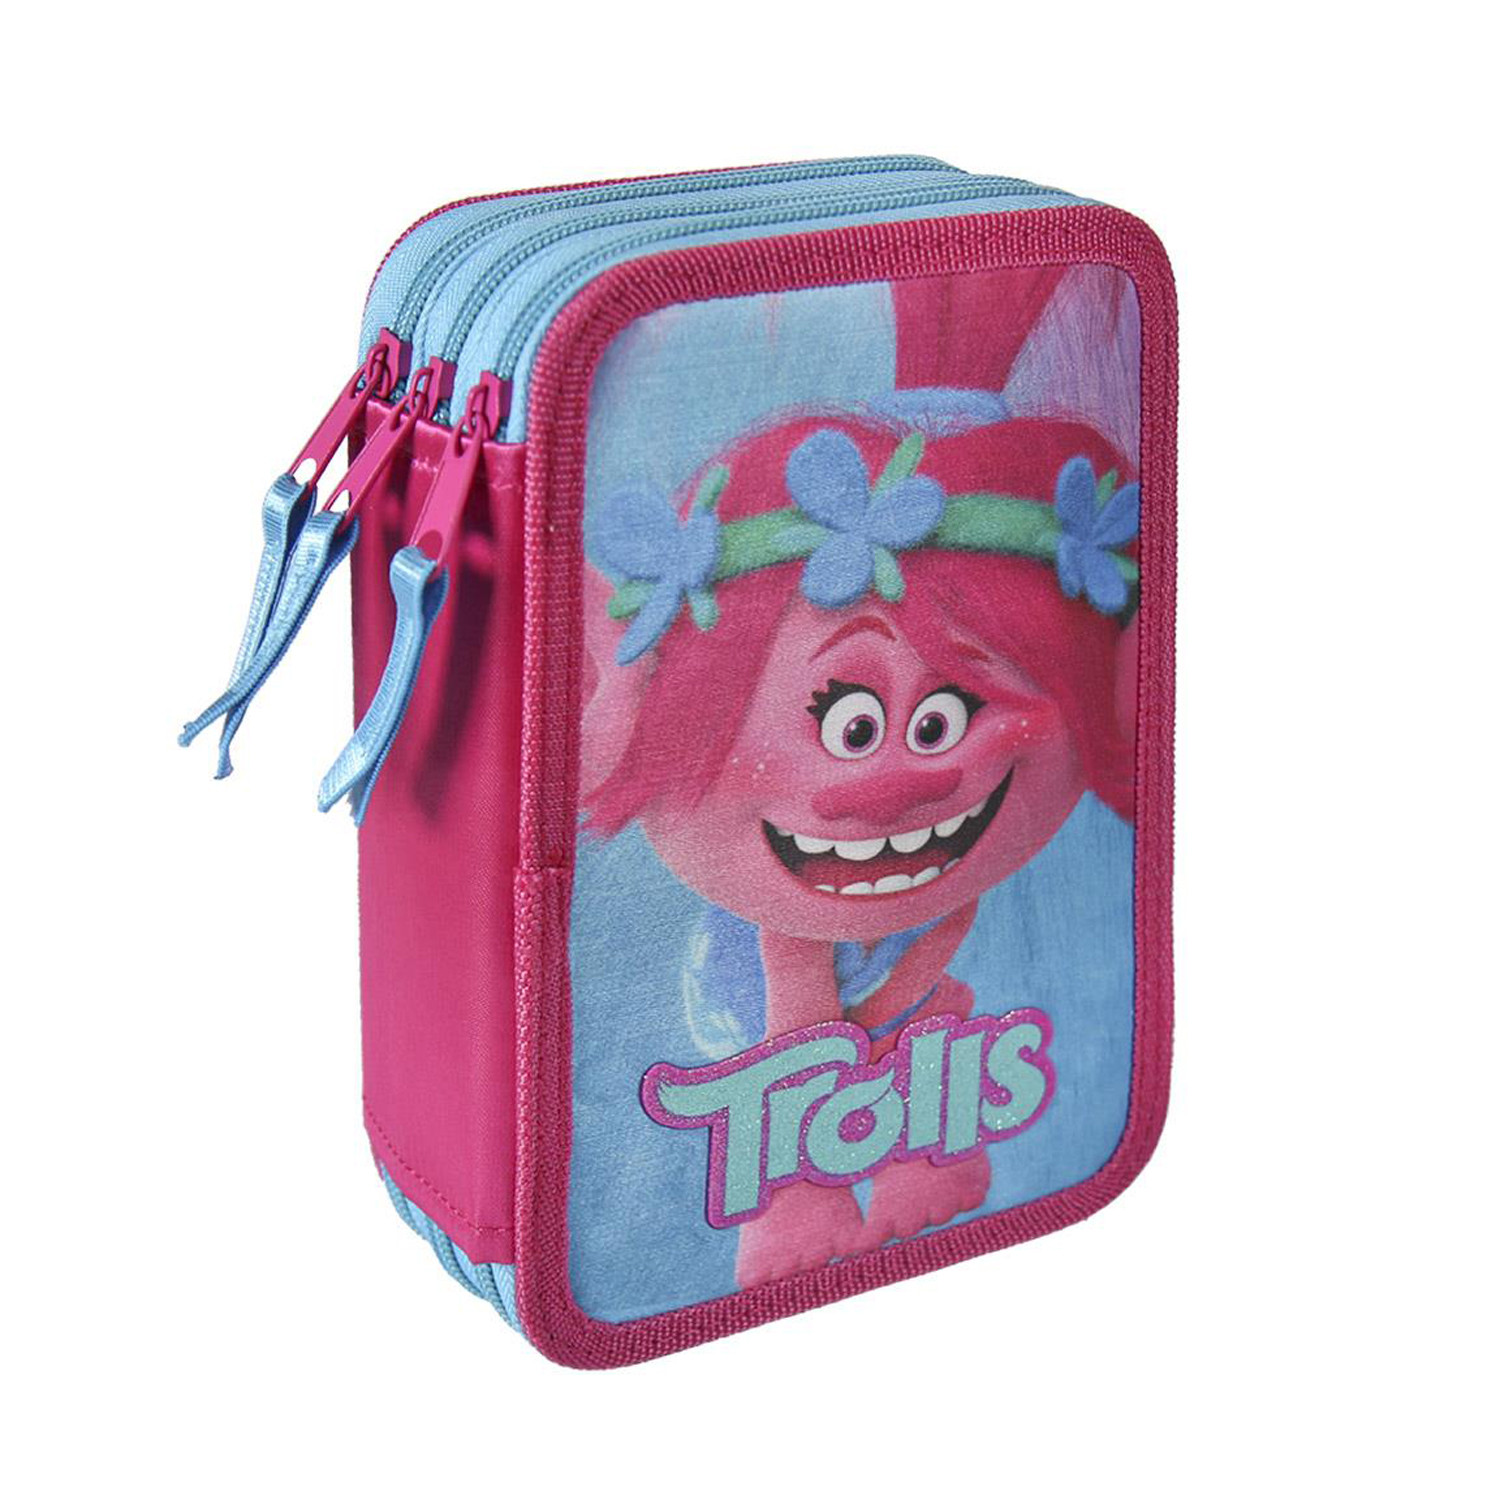 Case Case of Three Floors of Trolls Original Giotto Home and More